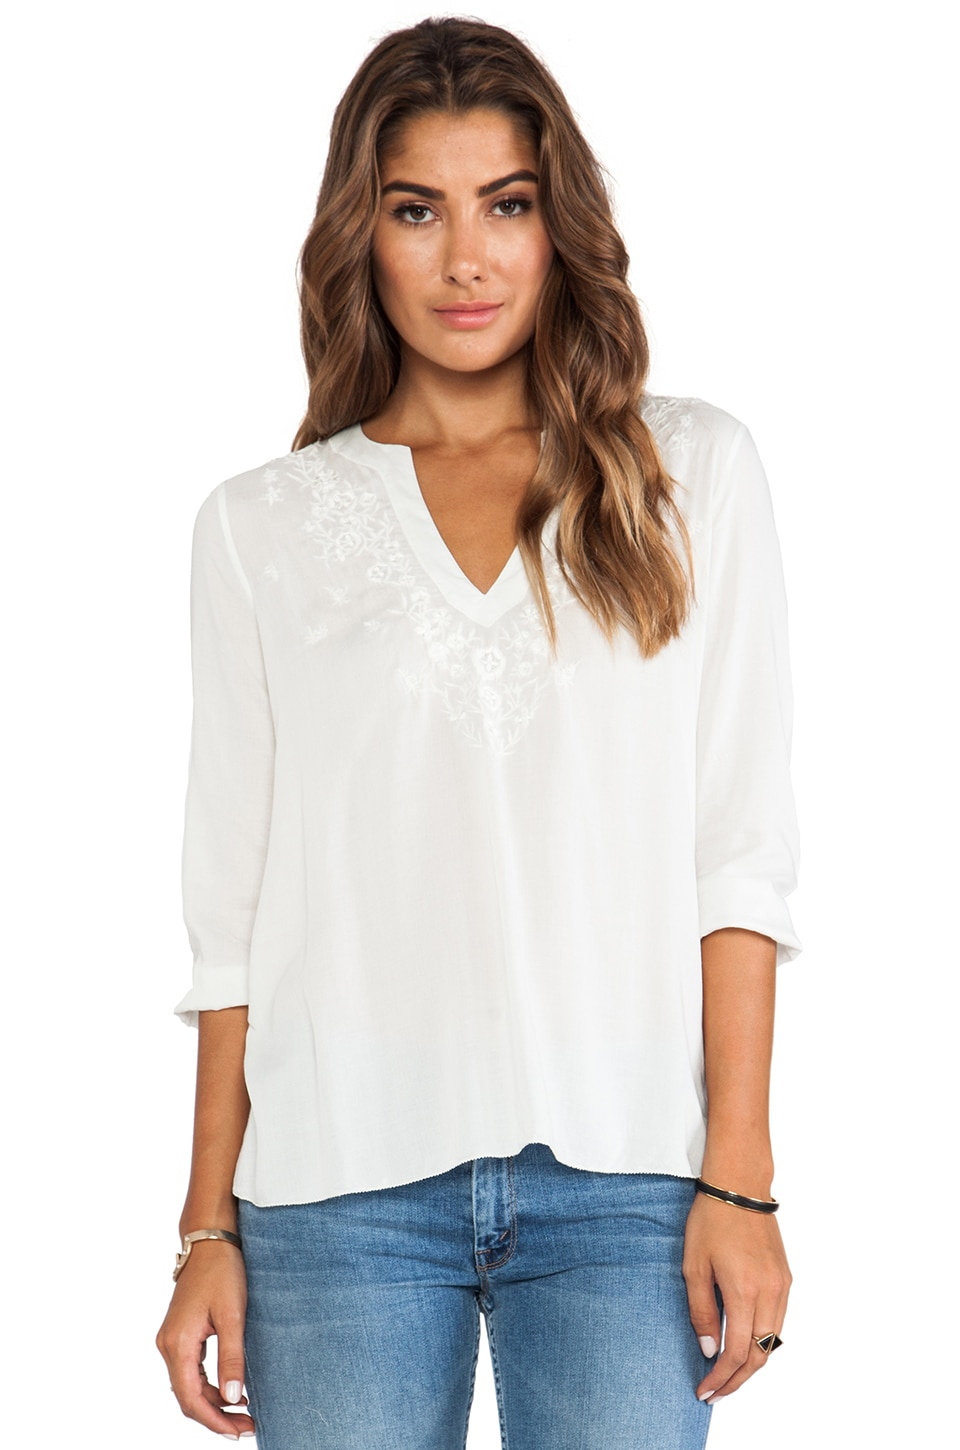 Soft Joie Lake Top in Porcelain